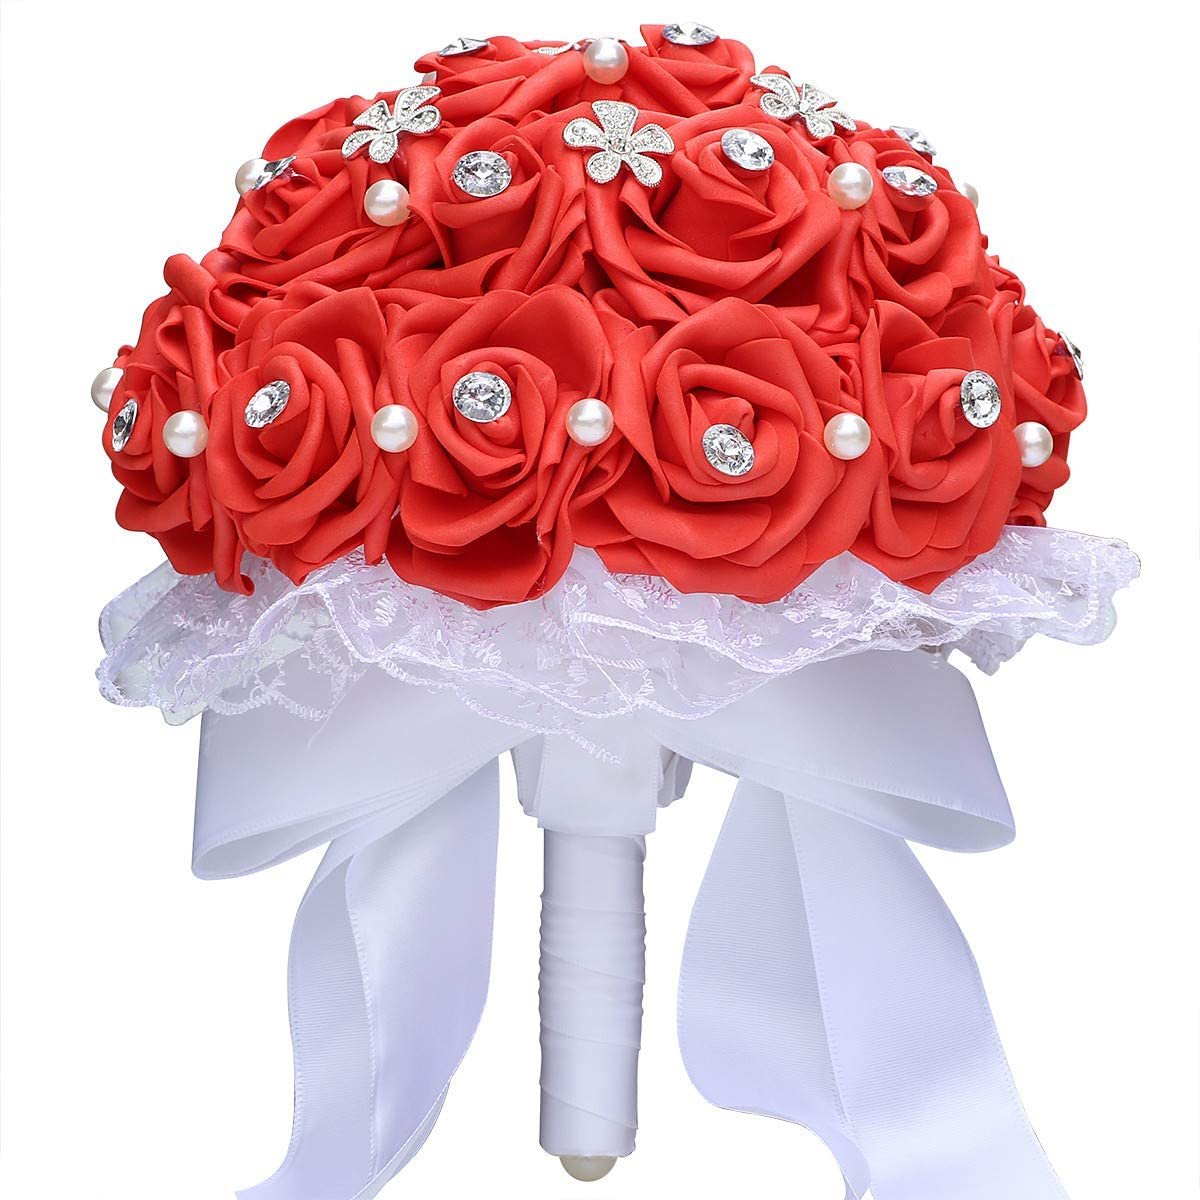 GoldenPlayer Bridal Bouquet for Brides or Bridesmaids Wedding Hand Bouquet Artificial Fake Flowers (Color red)